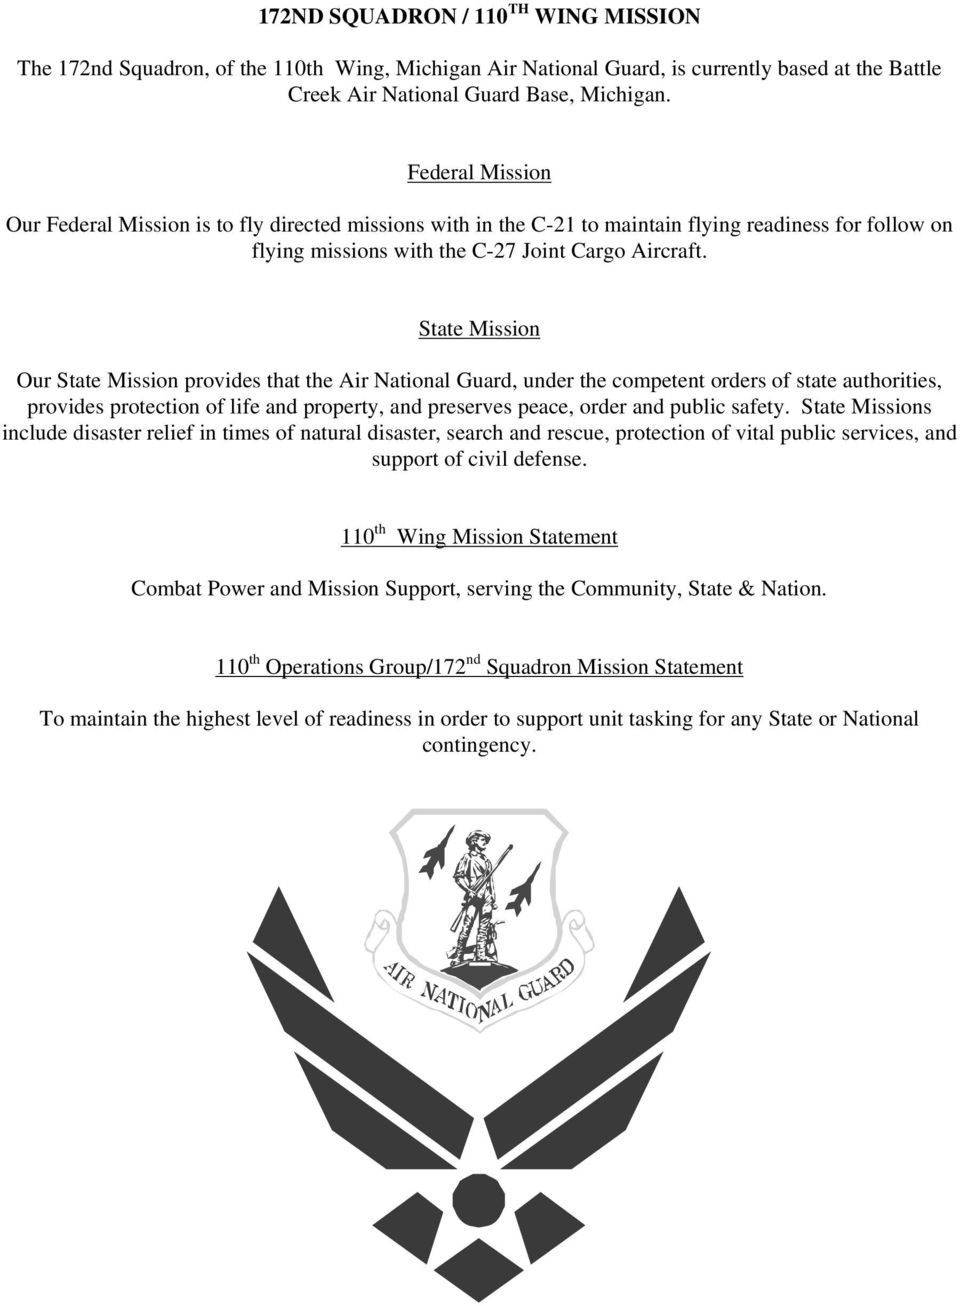 State Mission Our State Mission provides that the Air National Guard, under the competent orders of state authorities, provides protection of life and property, and preserves peace, order and public